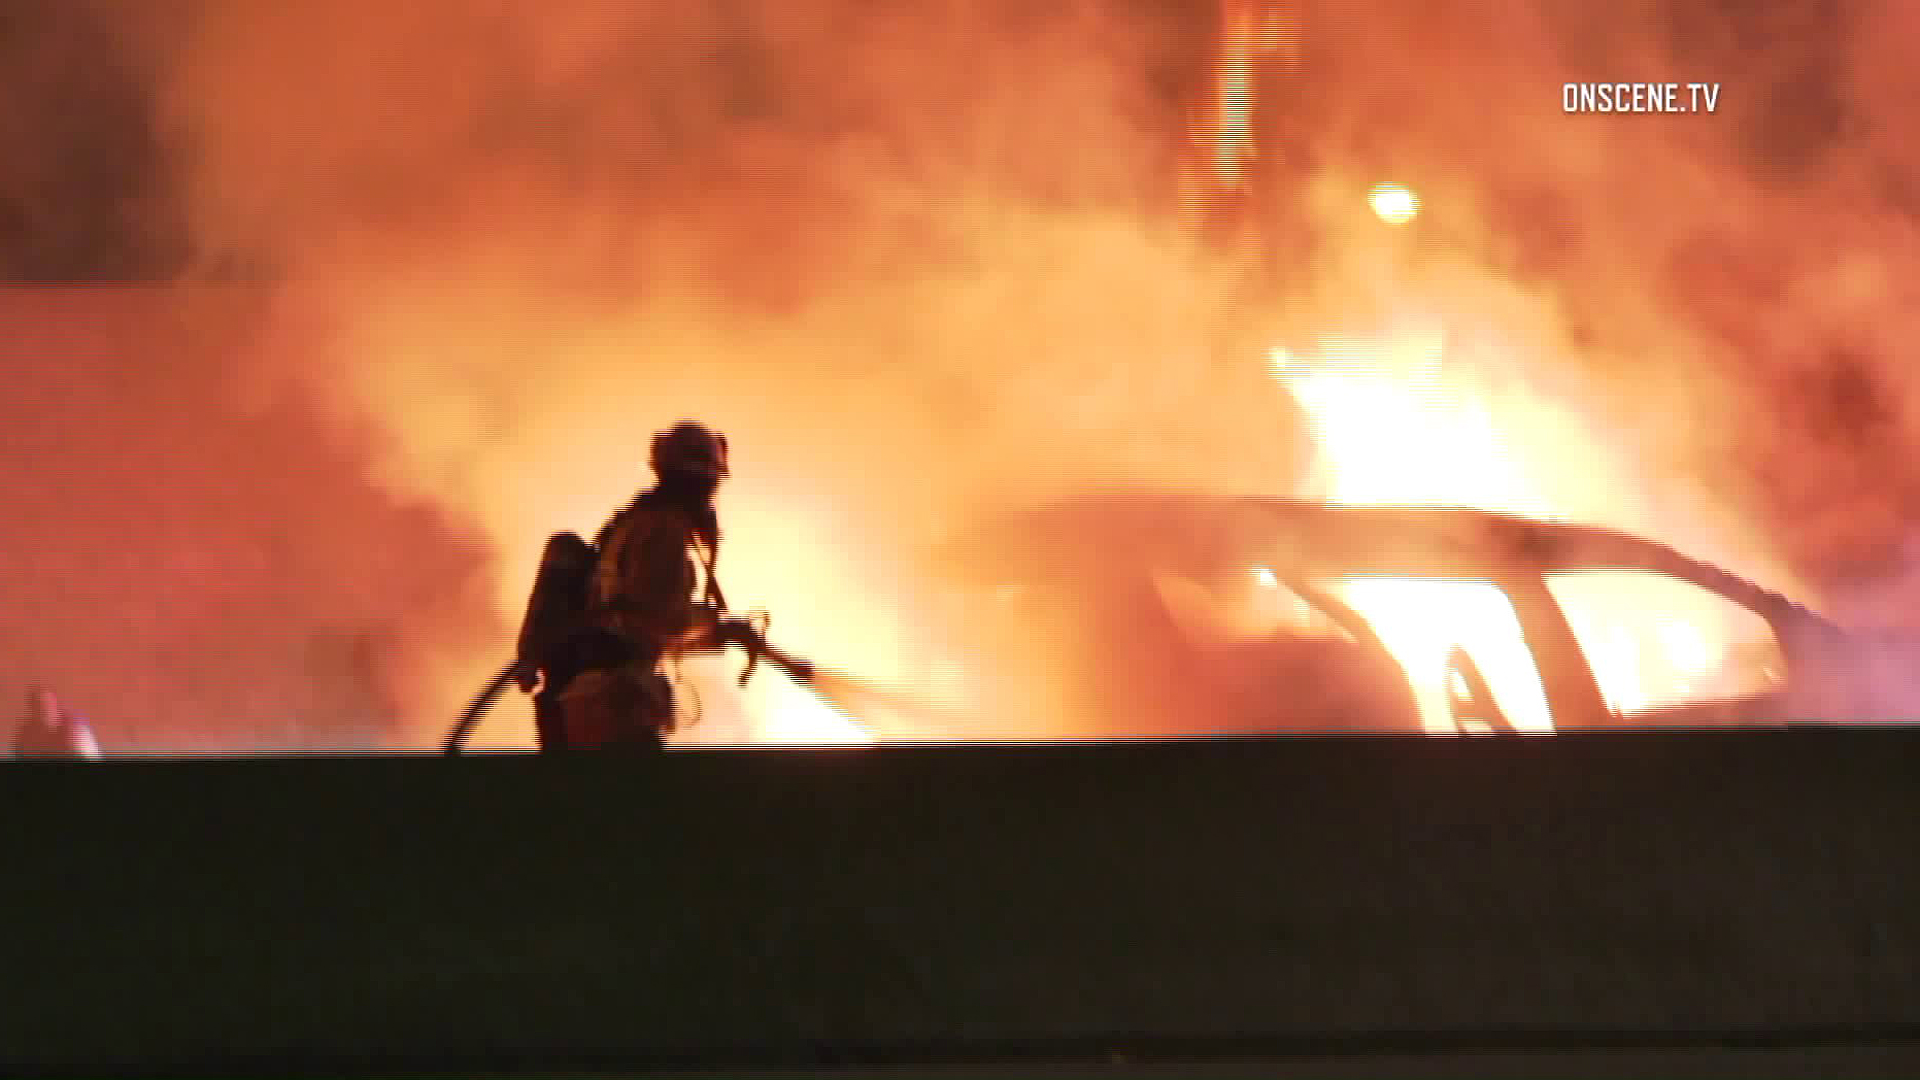 Firefighters respond to a fatal crash on the 605 Freeway in Norwalk on July 16, 2018. (Credit: OnScene.TV)